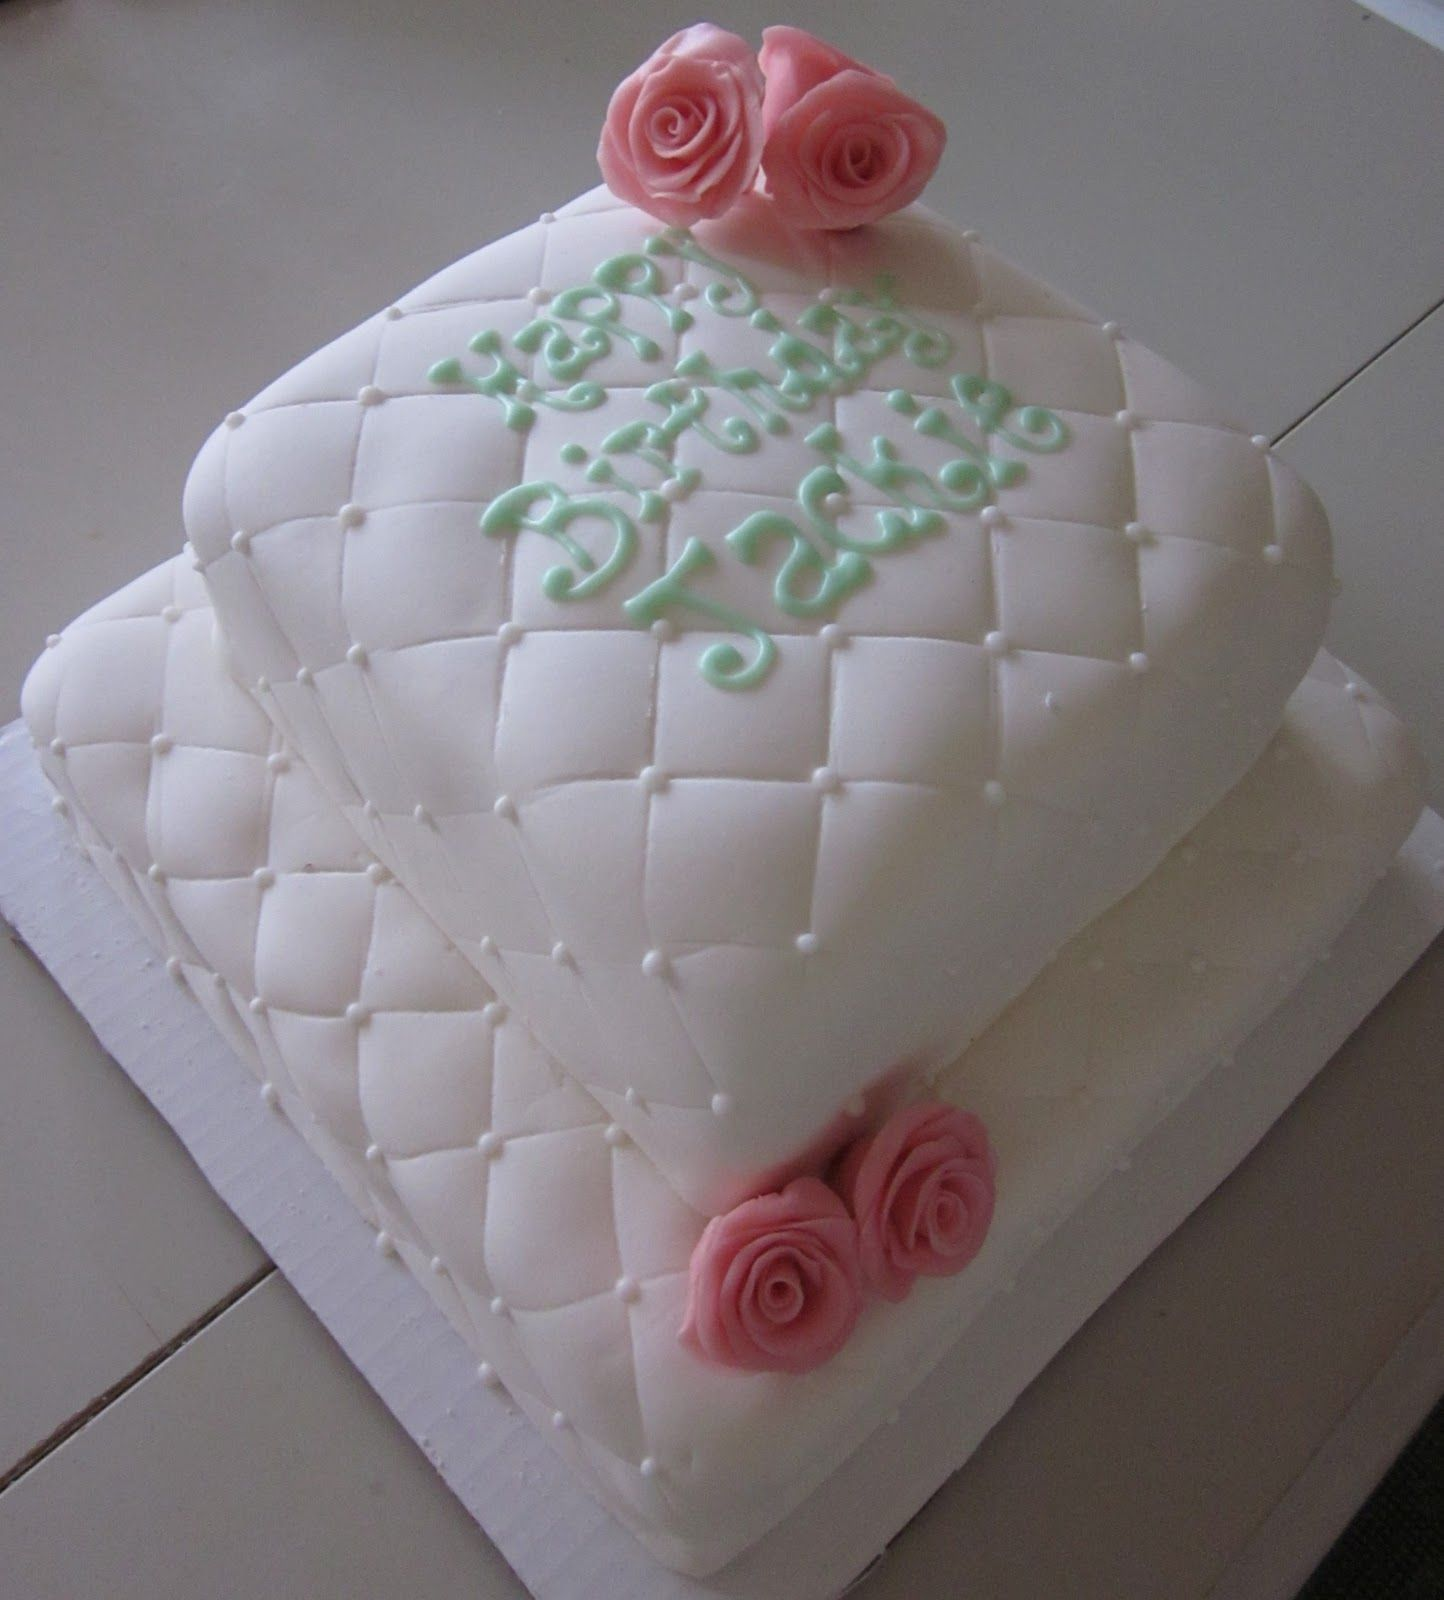 80th birthday cakes for women designs cake...these are